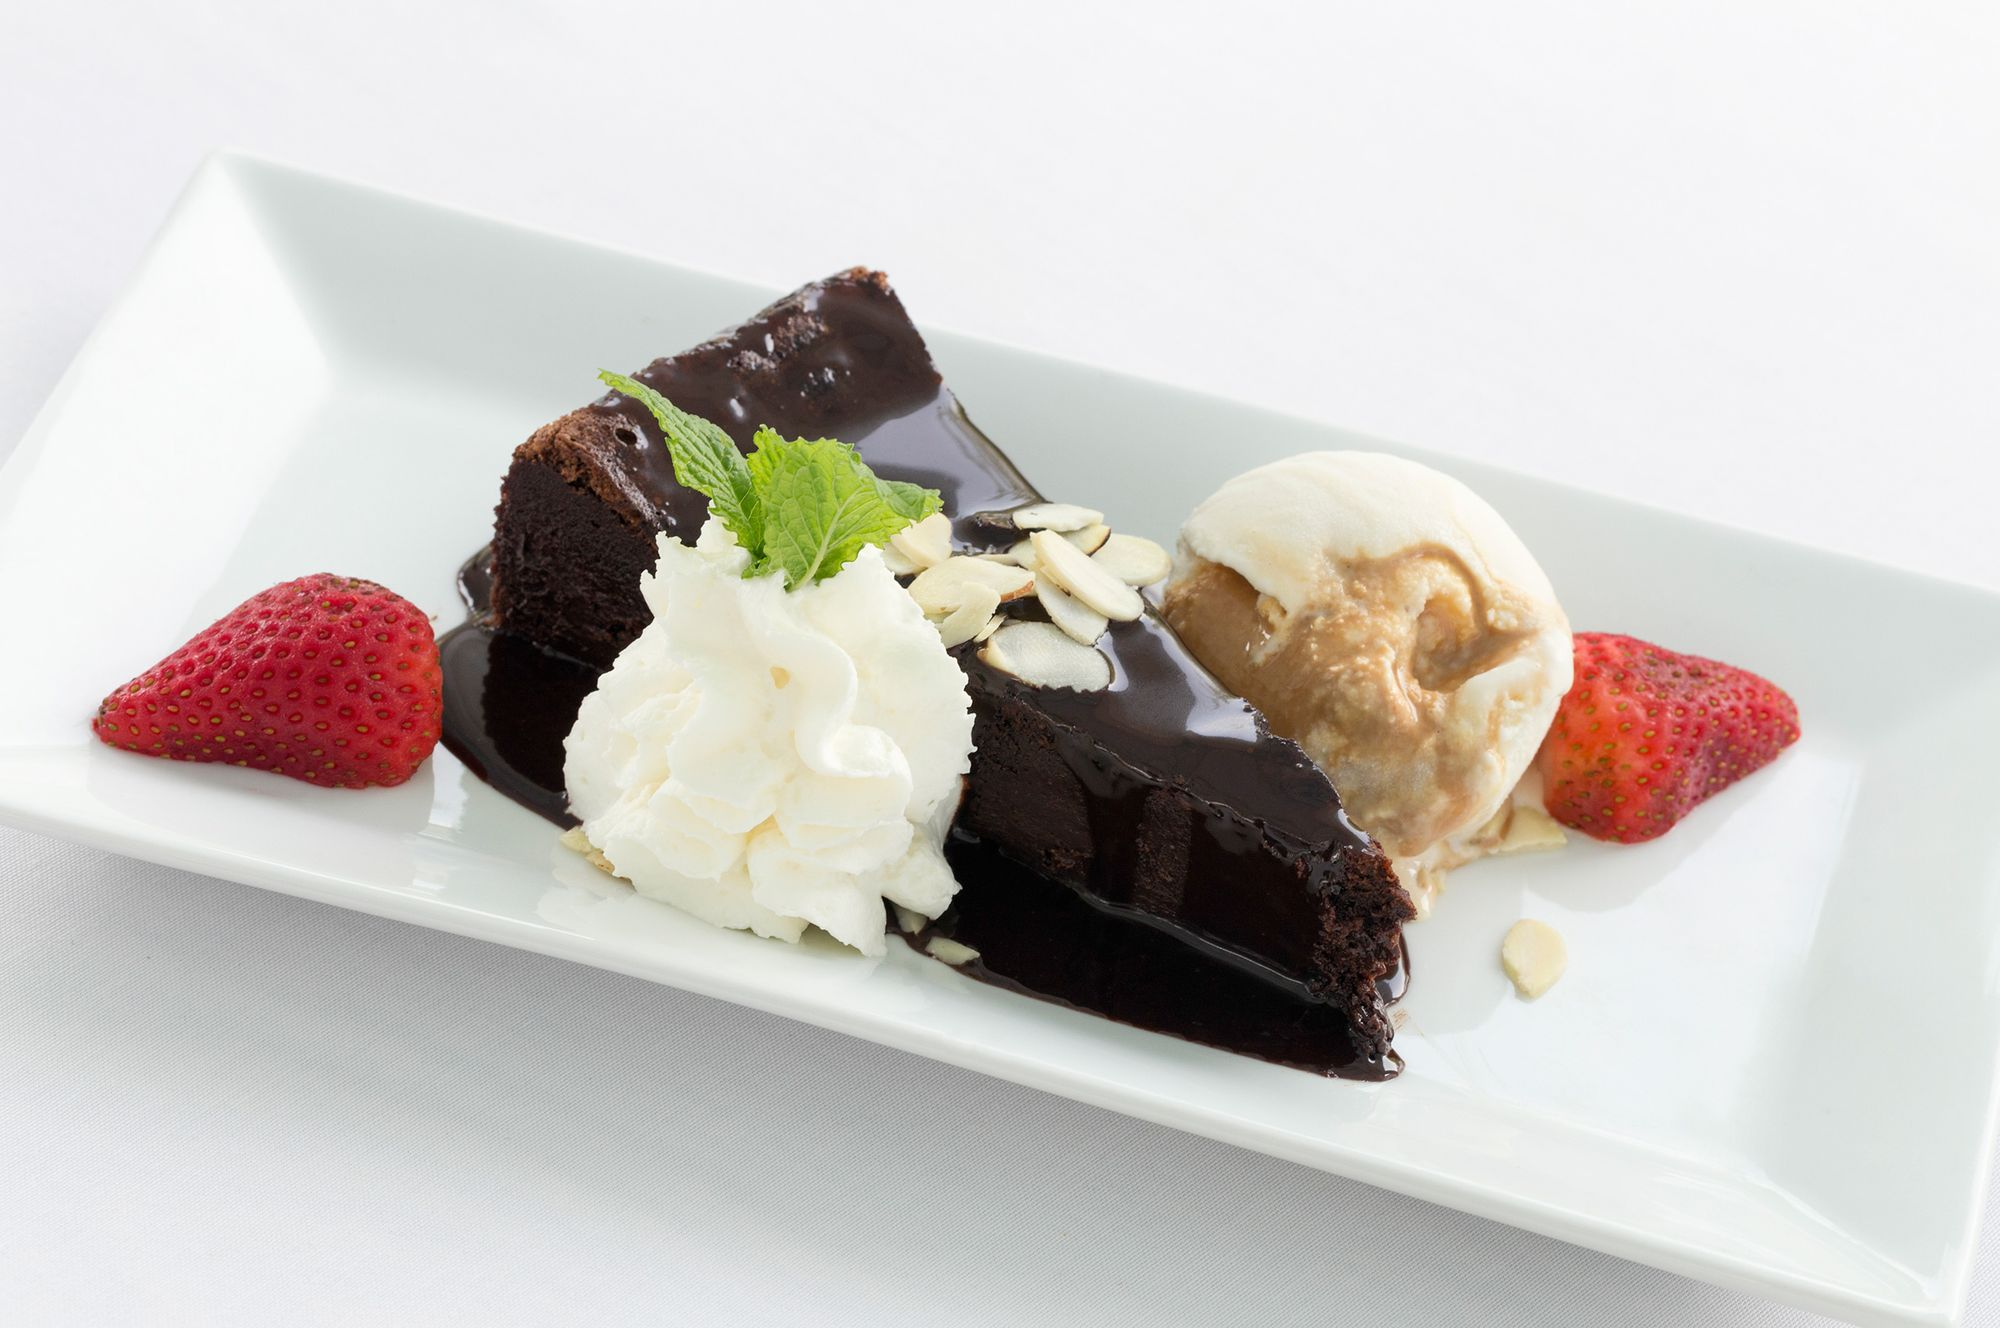 Food-dessert-chocolate cake.jpg